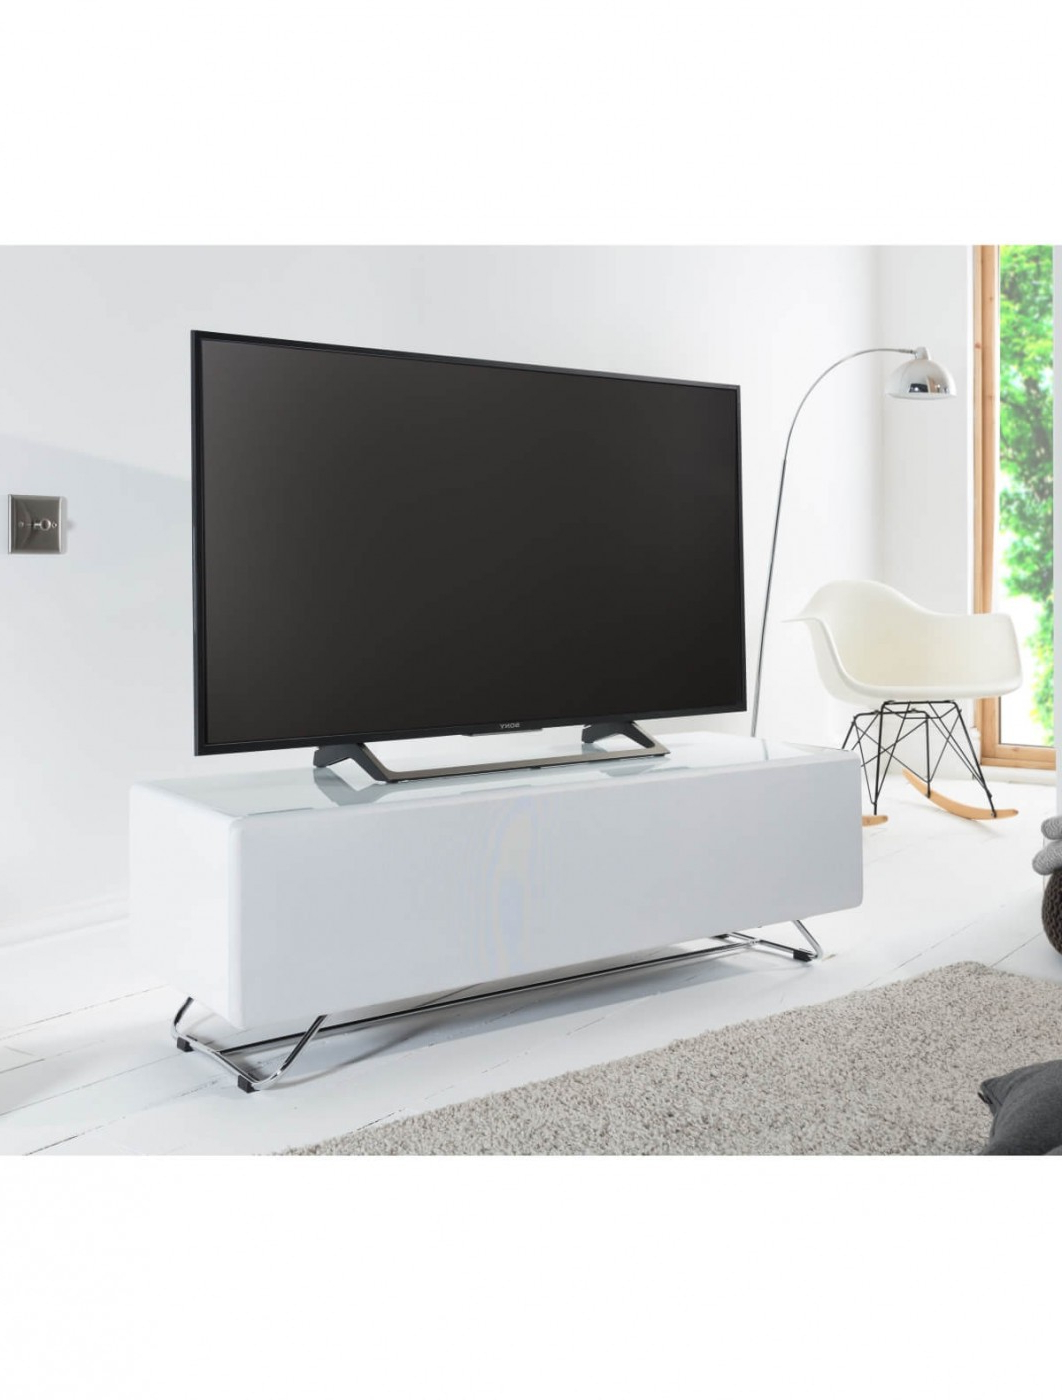 Tv Stand White Chromium Concept 1200mm Cro2 1200cpt Wh Within 57'' Tv Stands With Open Glass Shelves Gray & Black Finsh (View 3 of 20)